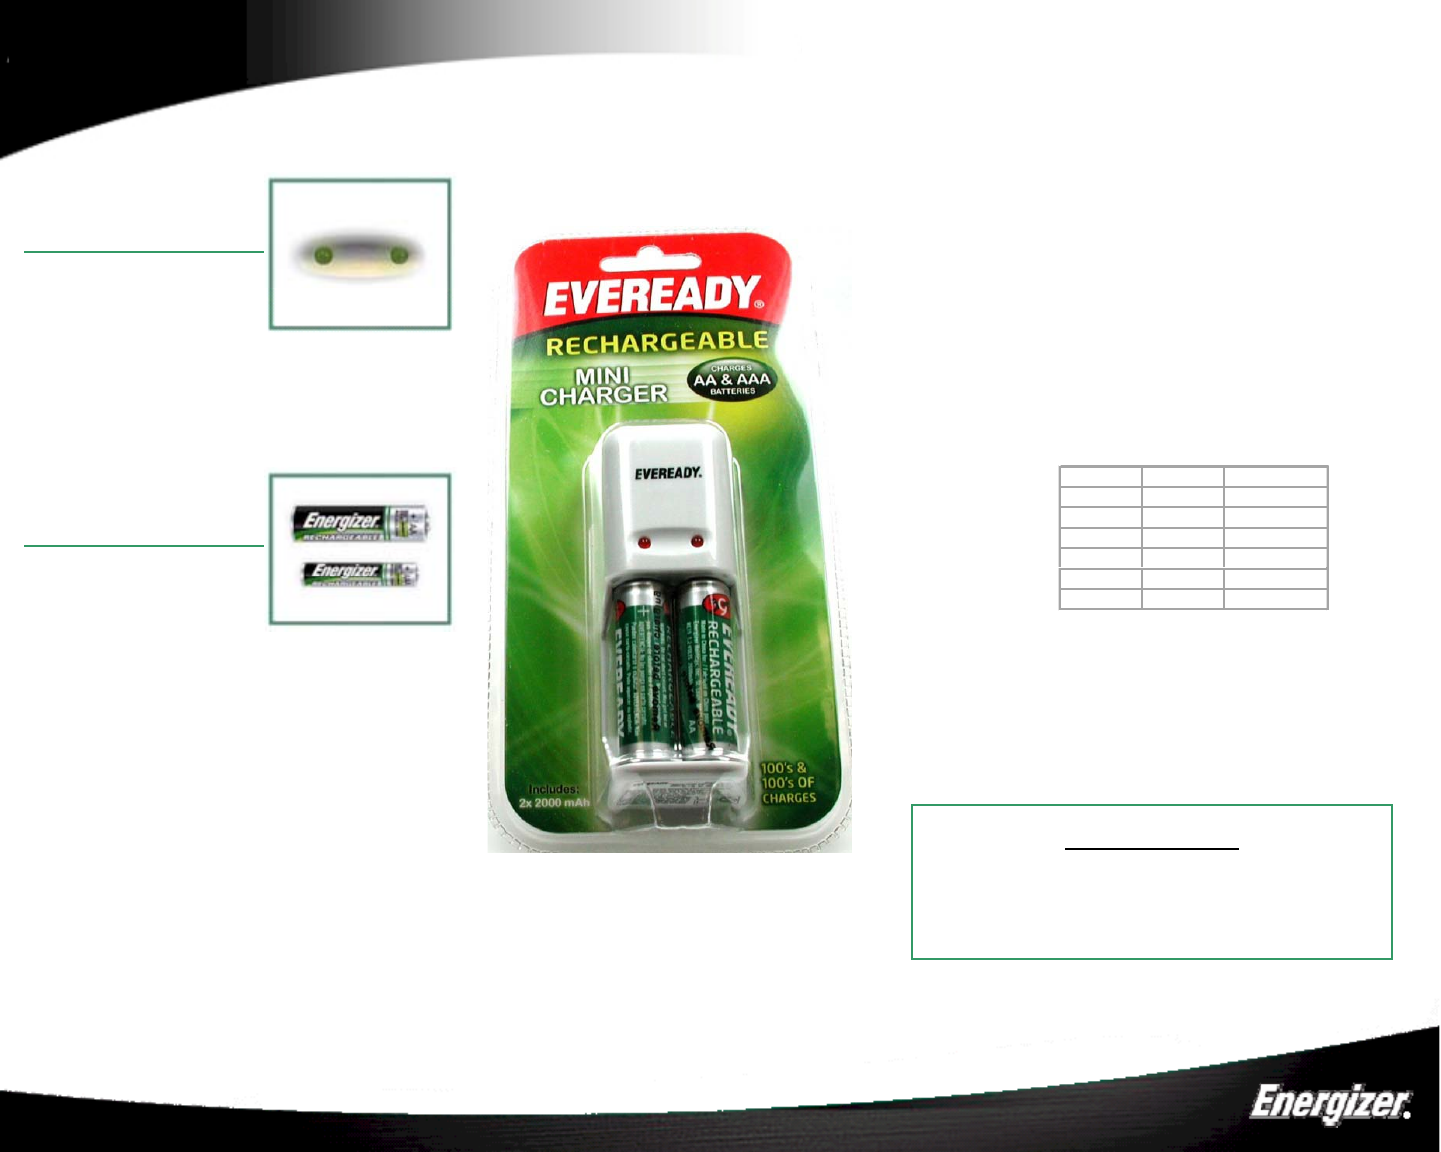 Energizer Battery Charger Ev2pc User Guide Manualsonline Com